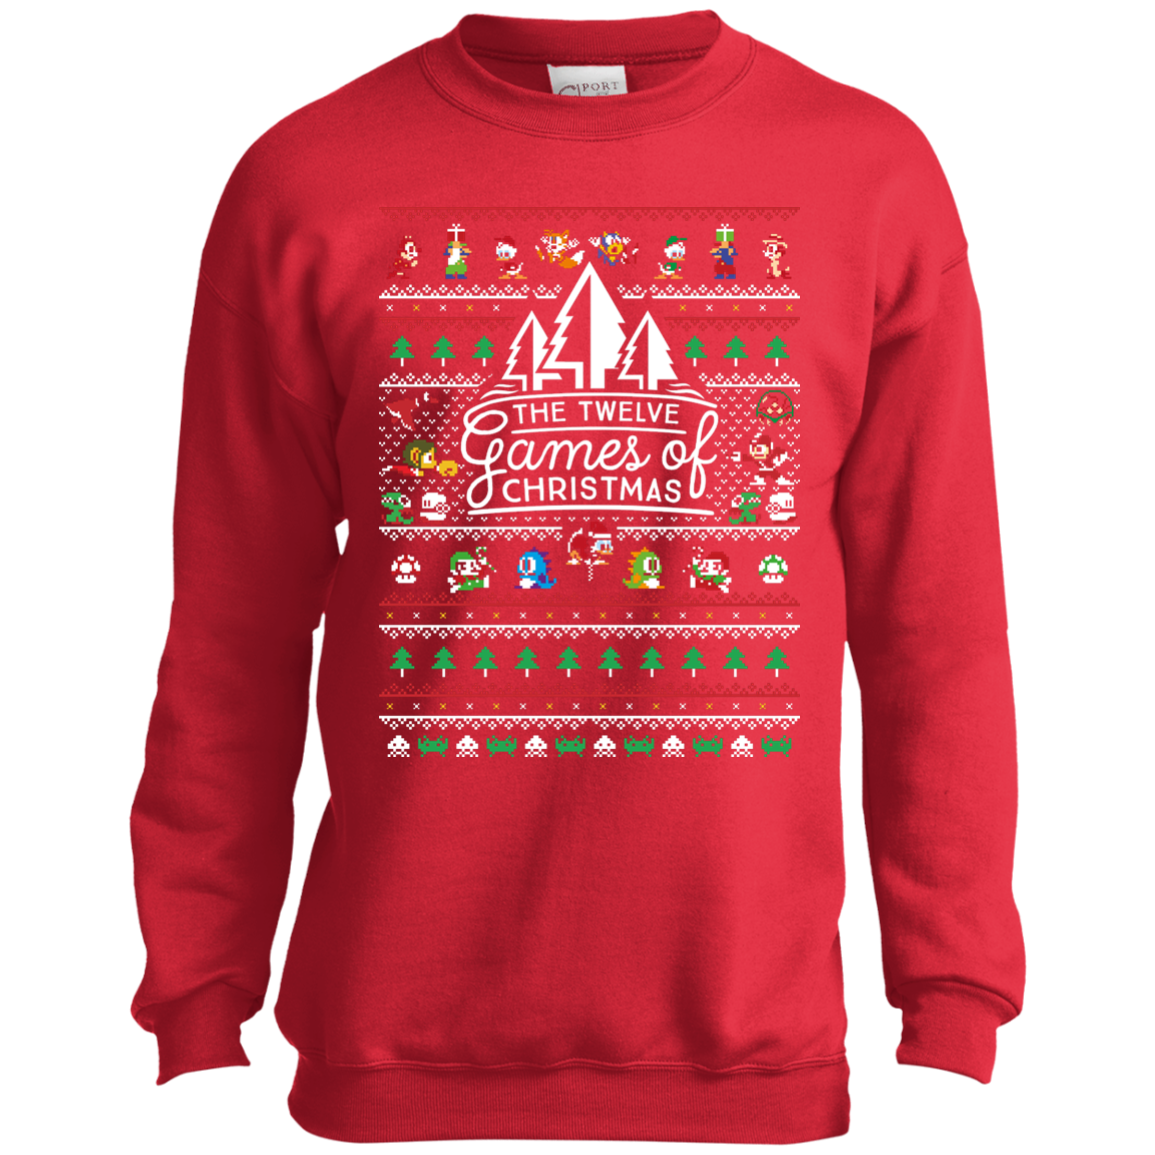 12 Games of Christmas Sweatshirt Ugly Christmas Sweater - The Sun Cat